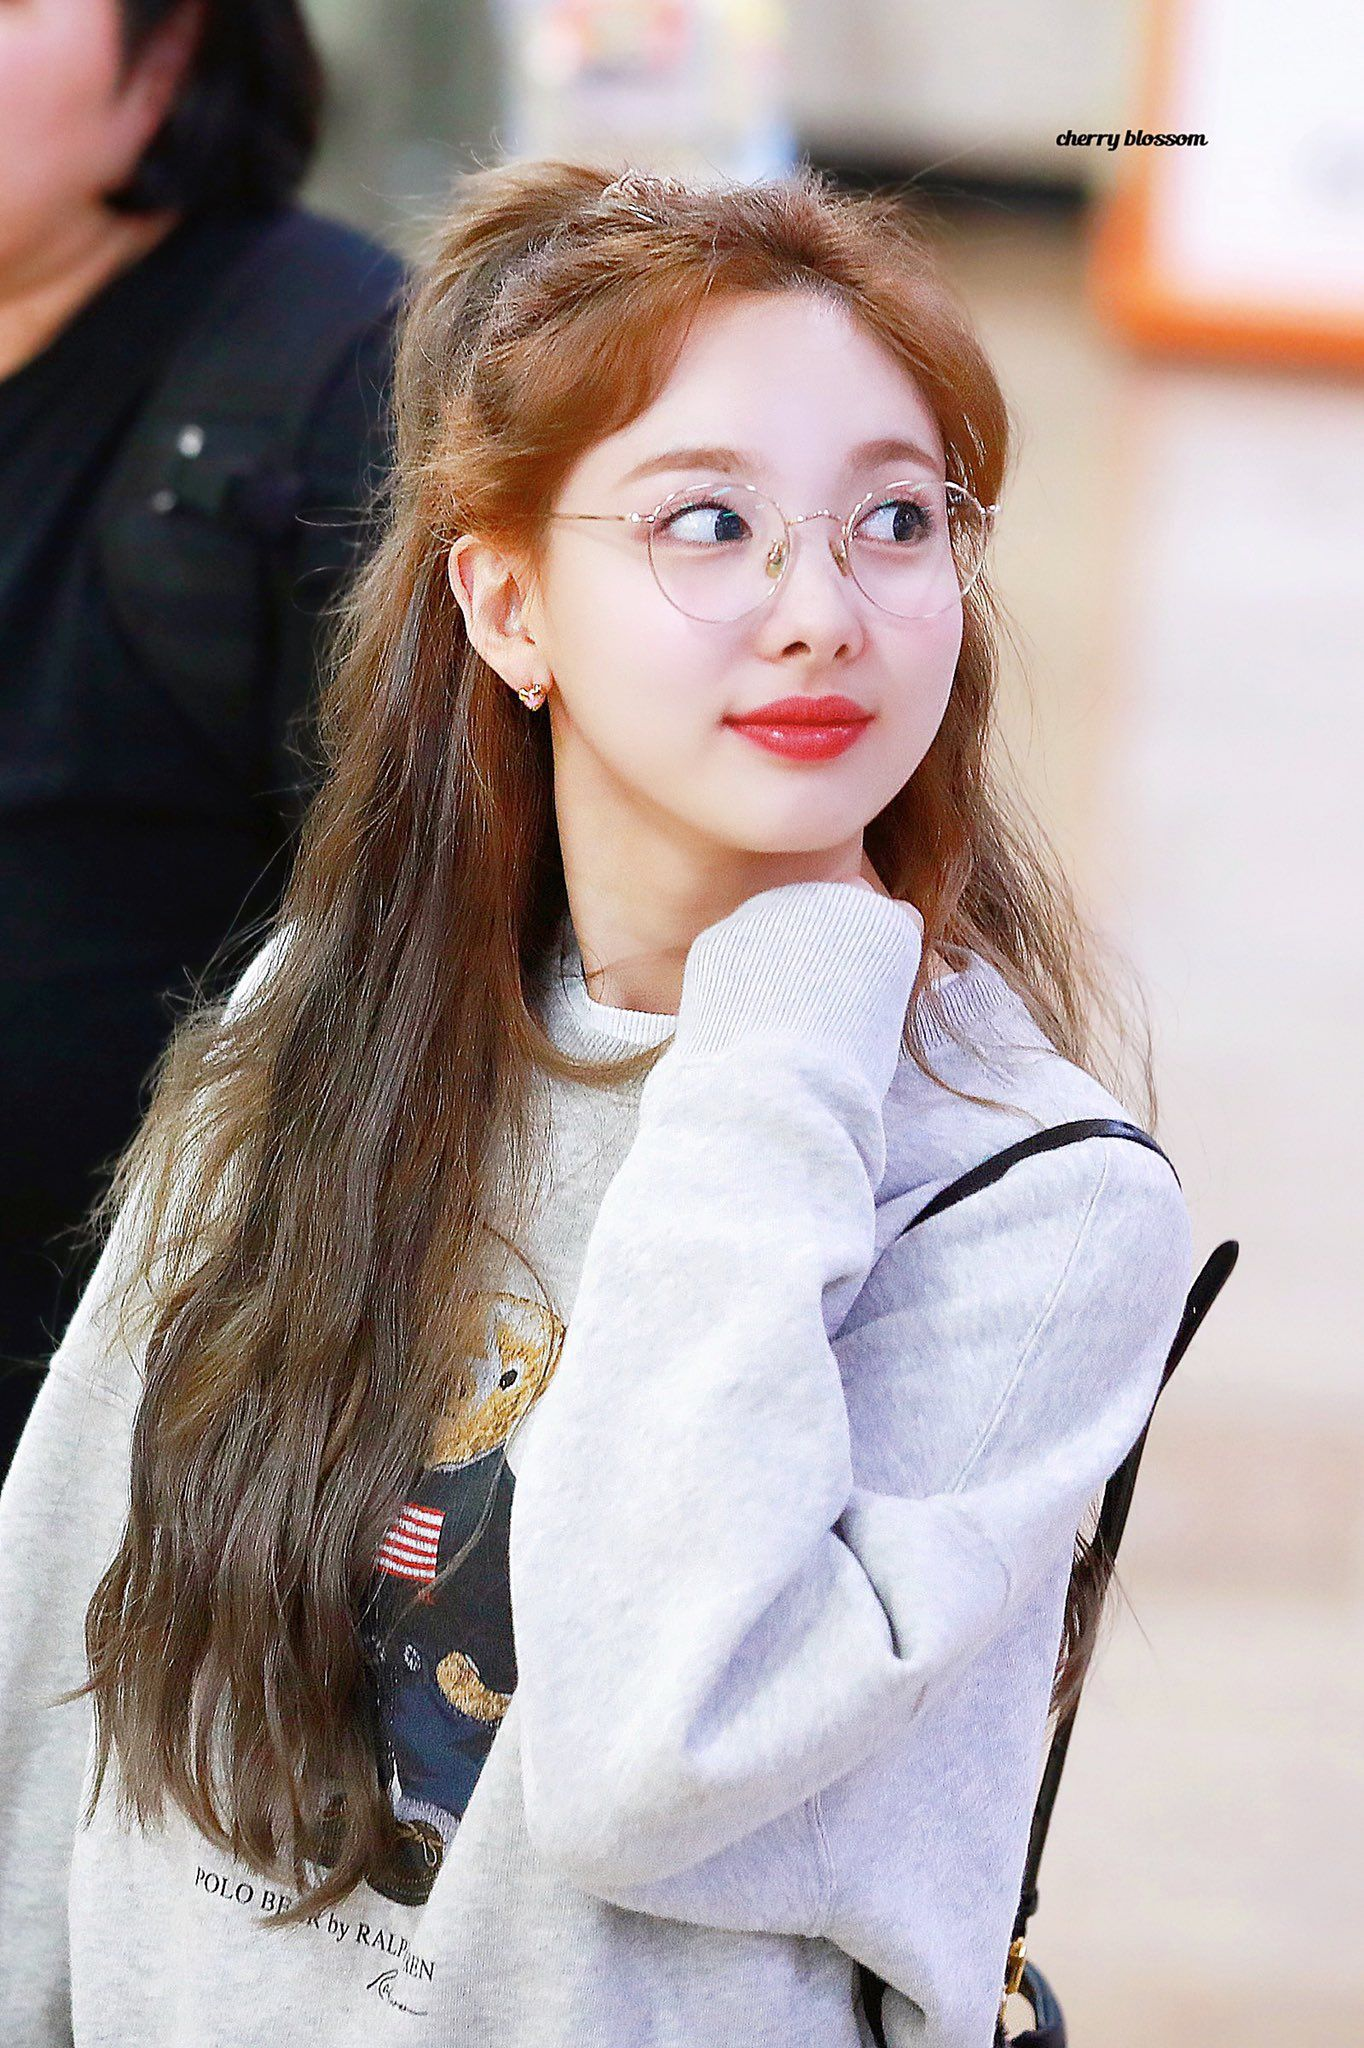 190908 - Nayeon with glasses